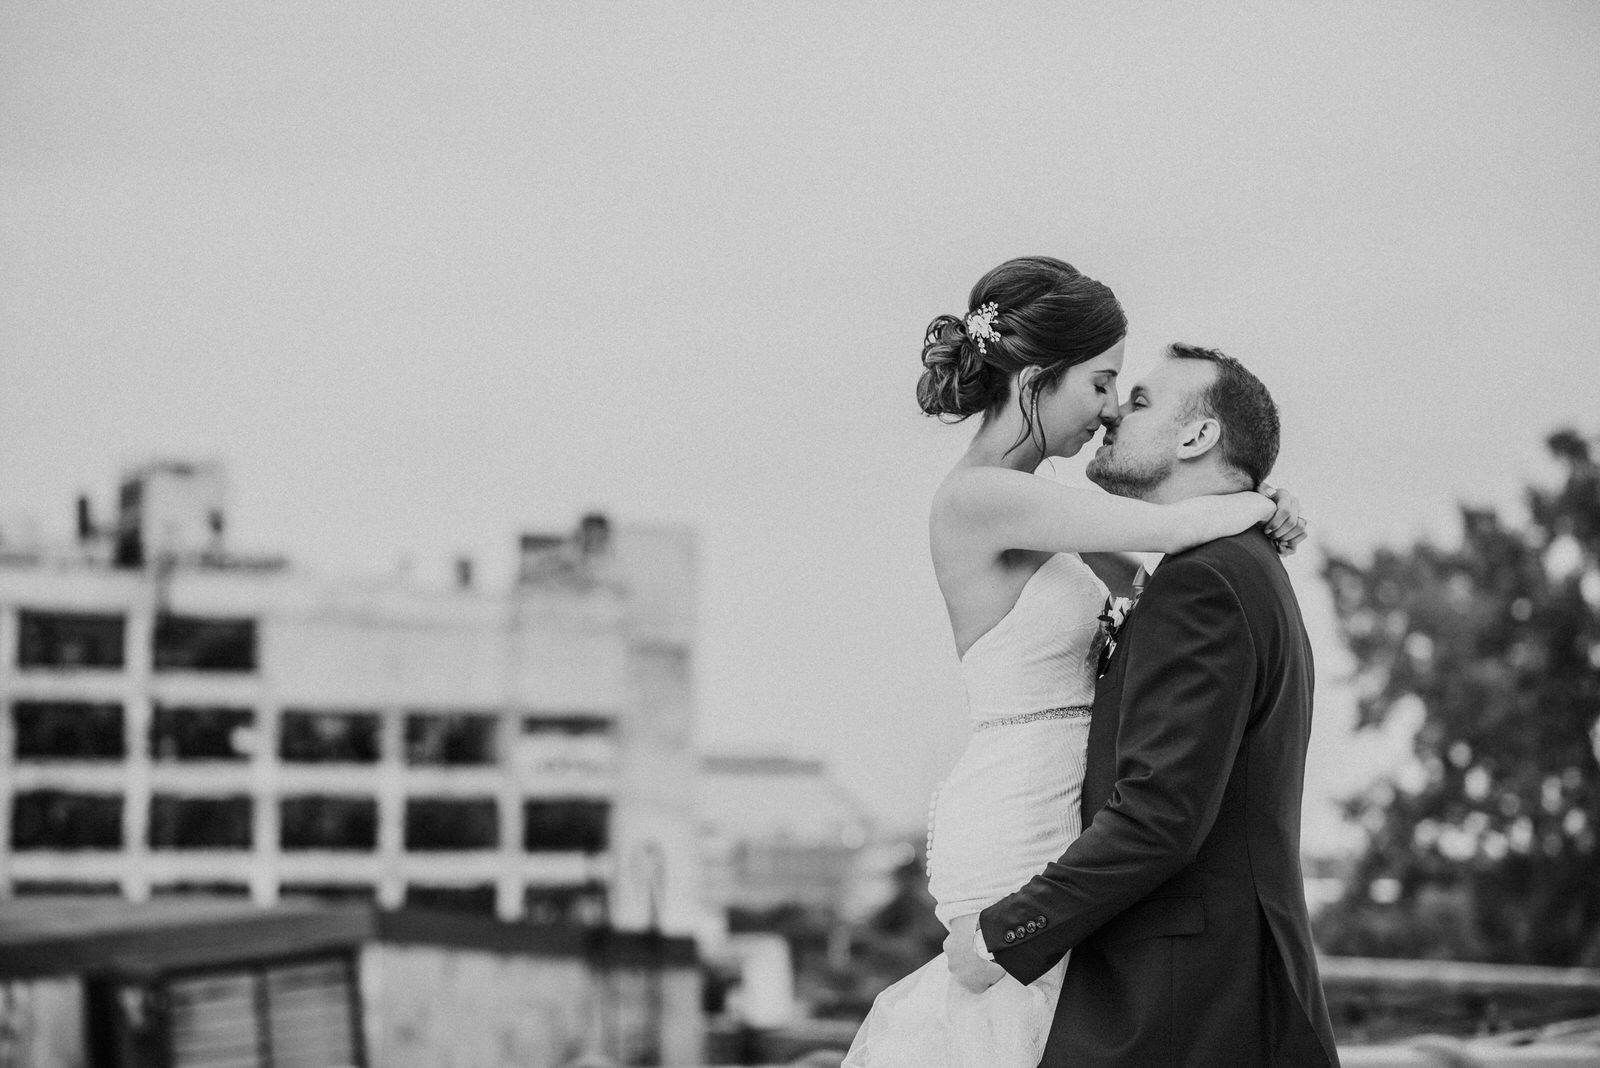 Rooftop wedding photo at Detroit's Piquette plant